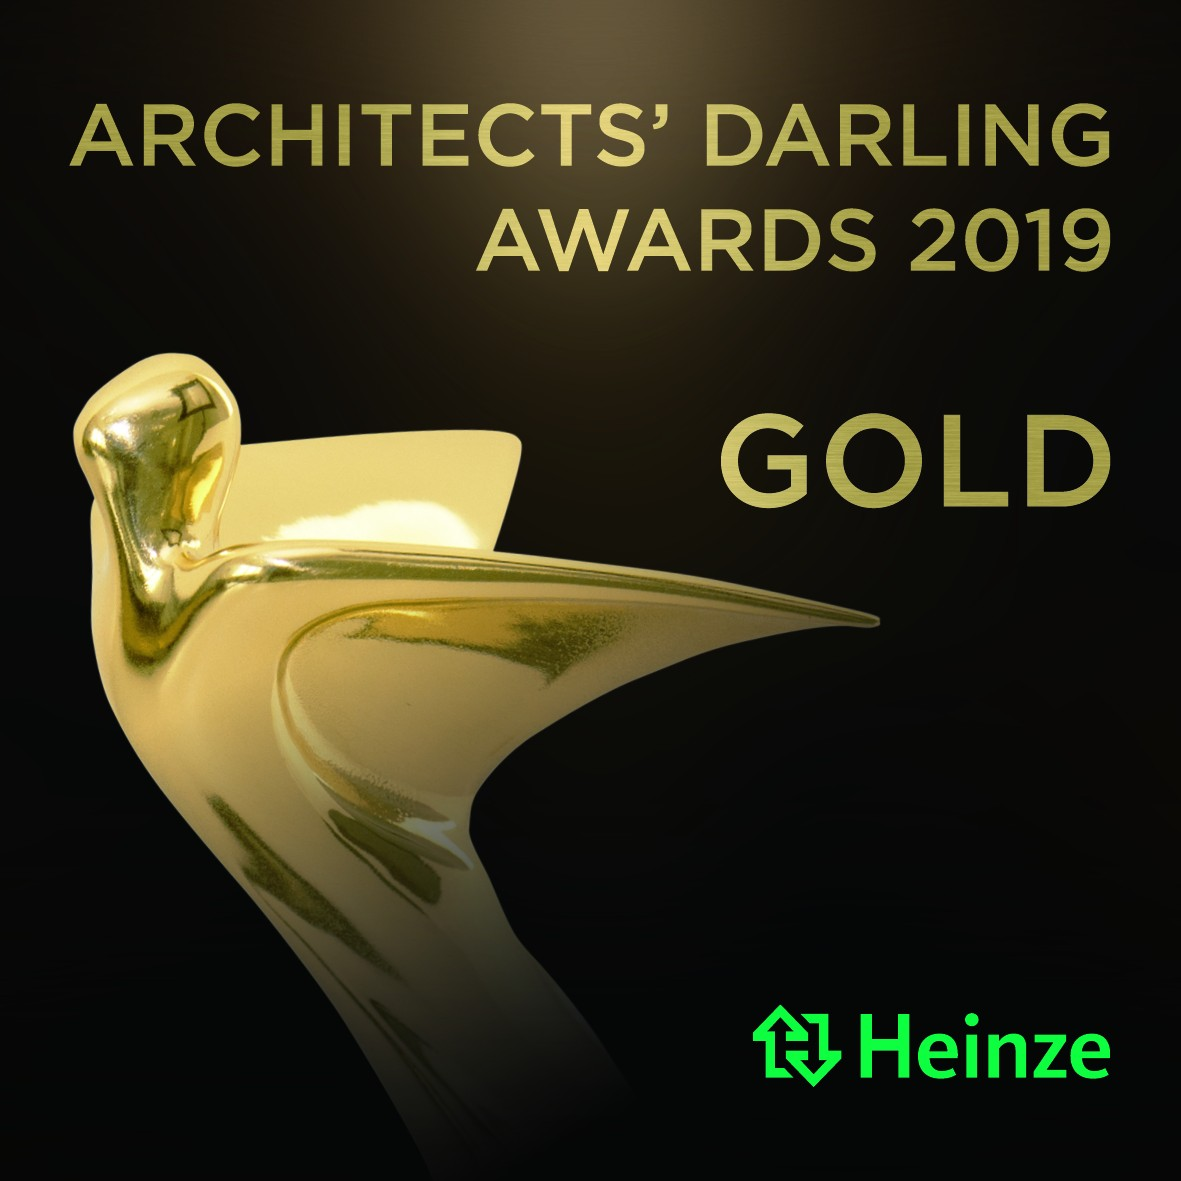 Architects' Darling Awards 2019